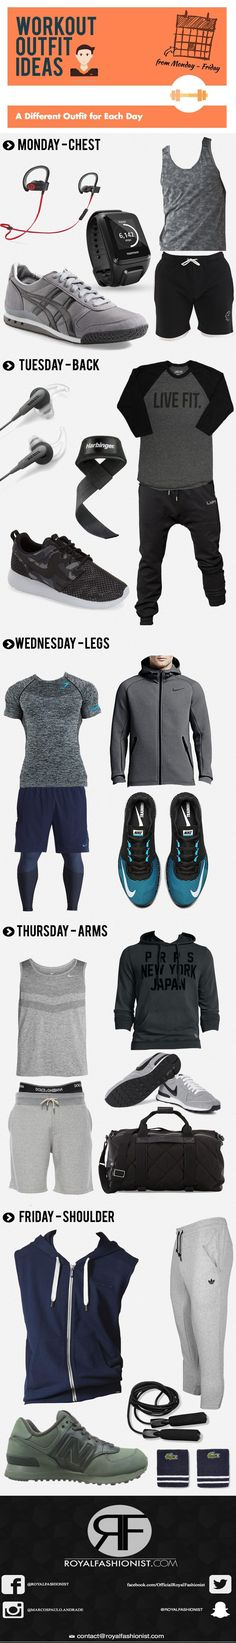 It is official, 2015 wasn't a good day for men's gym style. Let's upgrade your men's gym style 2016 and hope you get your game on the right track. Outfit Gym, Outfit Ideas, Body Builder, Herren Style, Look Man, Moda Fitness, Fitness Men, Fitness Shirts, Fitness Tips